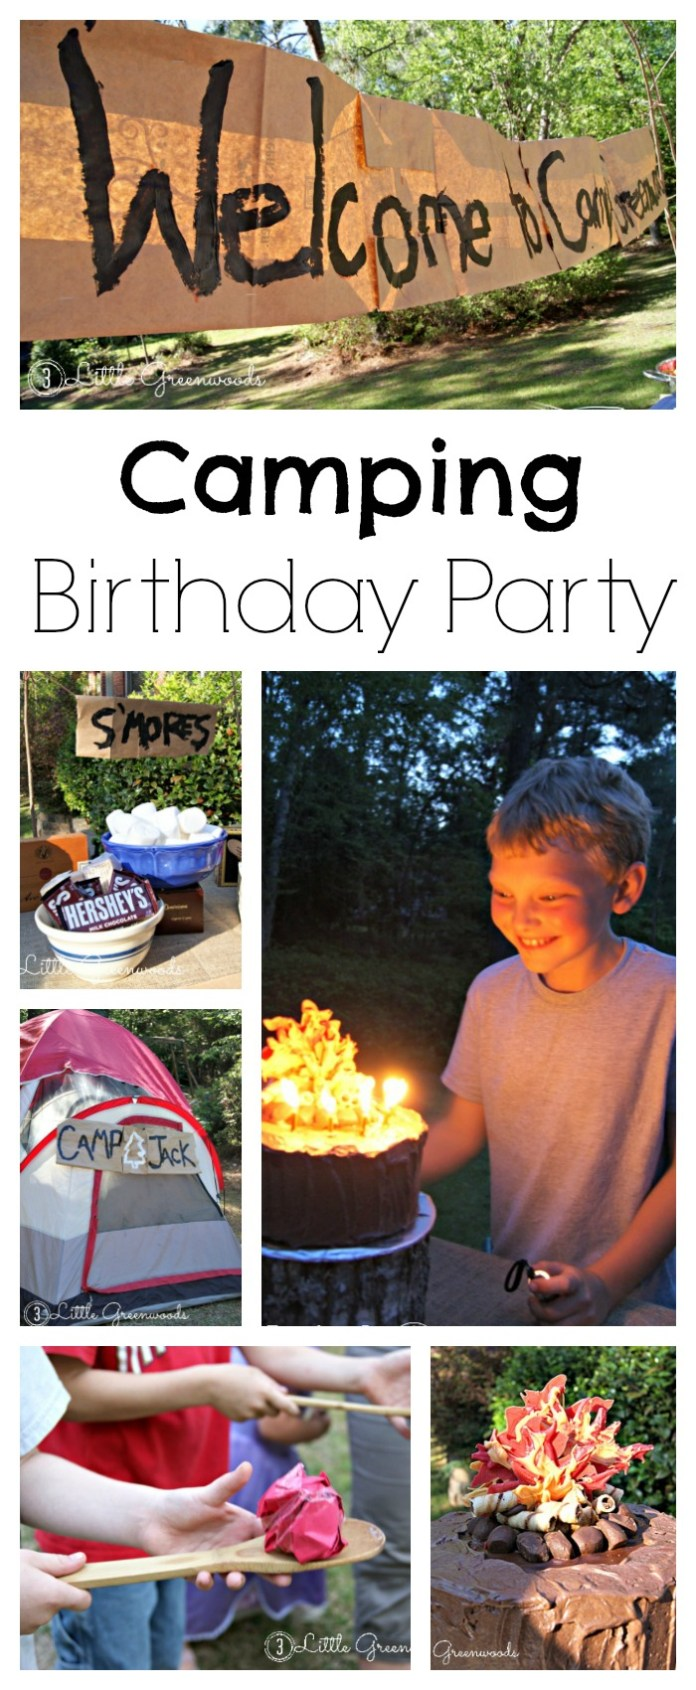 18.camping birthday party fun for backyard camping party ideas via SIMPHOME.COM